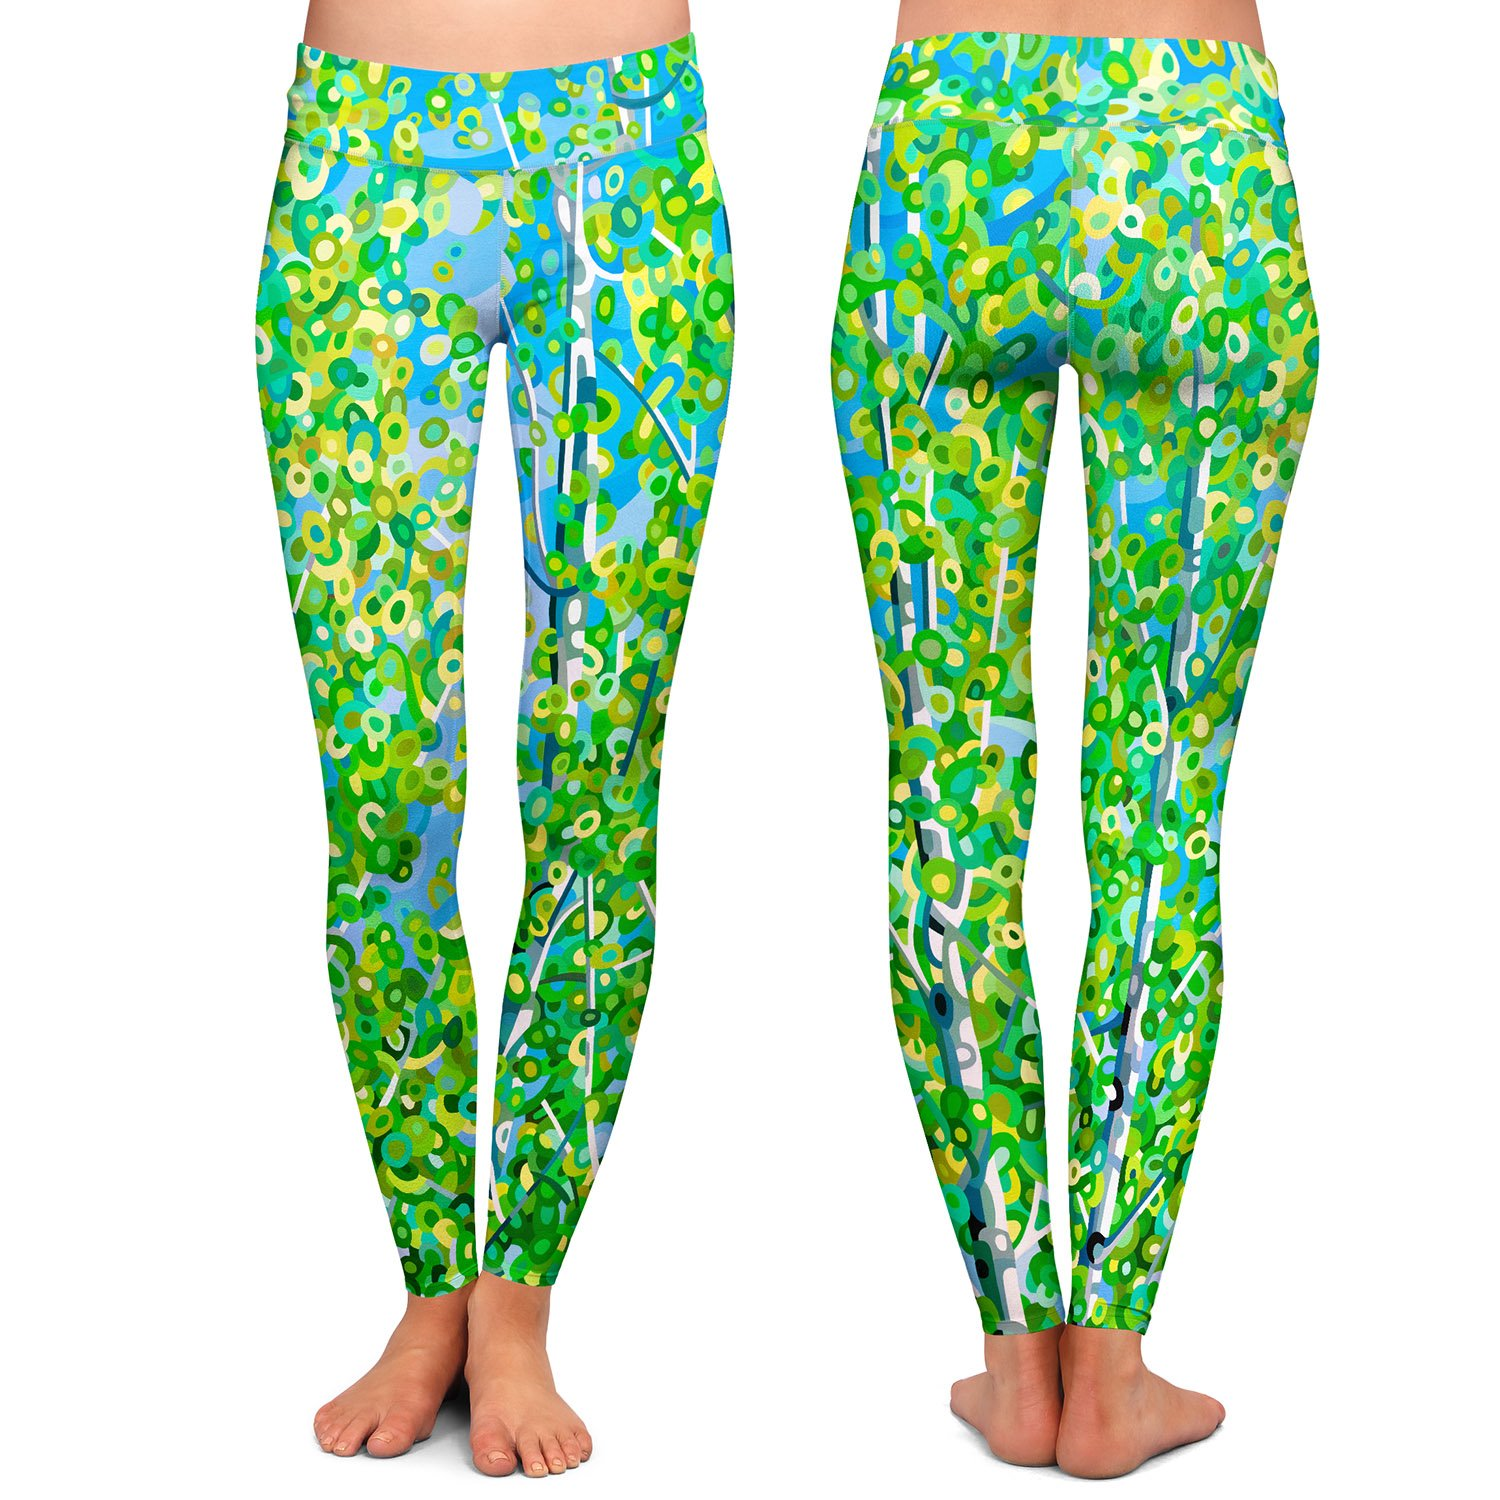 Athletic Yoga Leggings from DiaNoche Designs by Mandy Budan Summer Garden